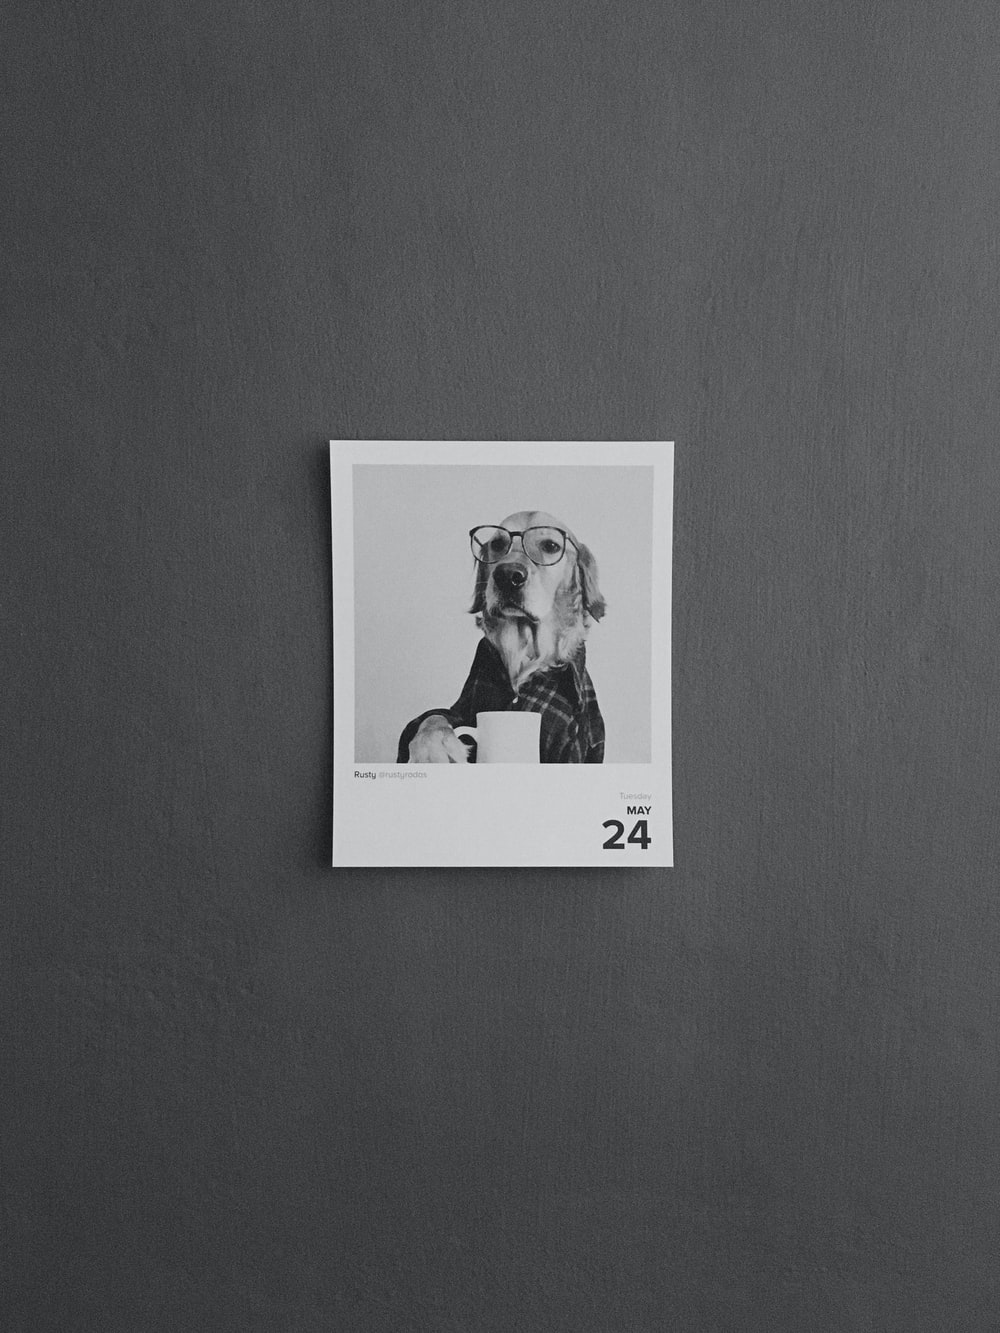 2 dogs in grayscale photo